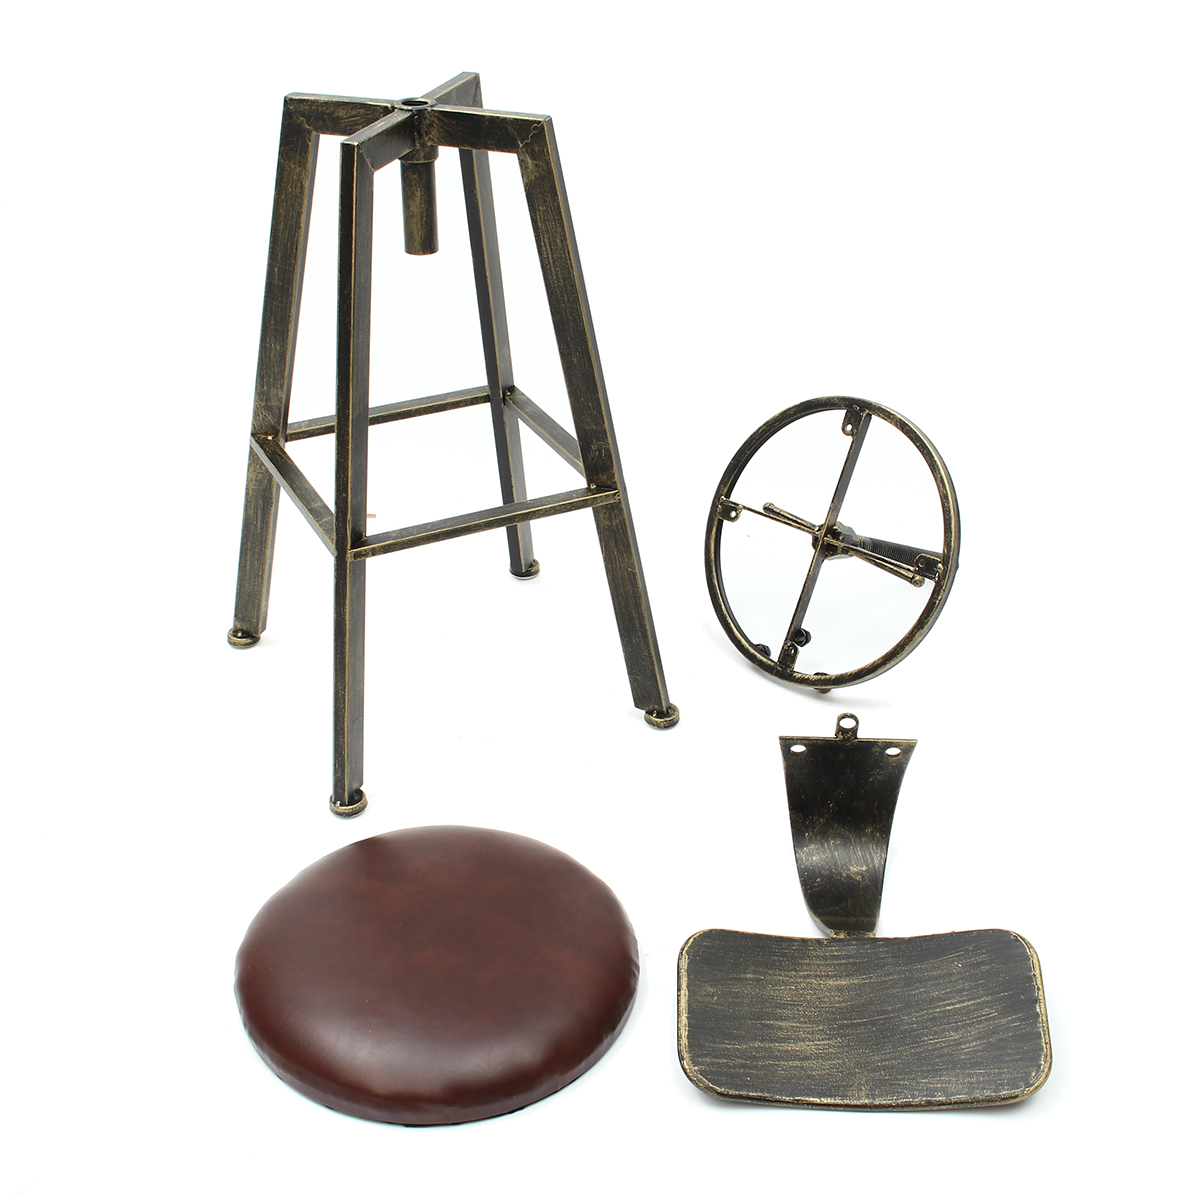 Vintage Retro Craft PU Leather Bar Stool 360 Degree Rotate Counter Lift High Chair Bar Decorations